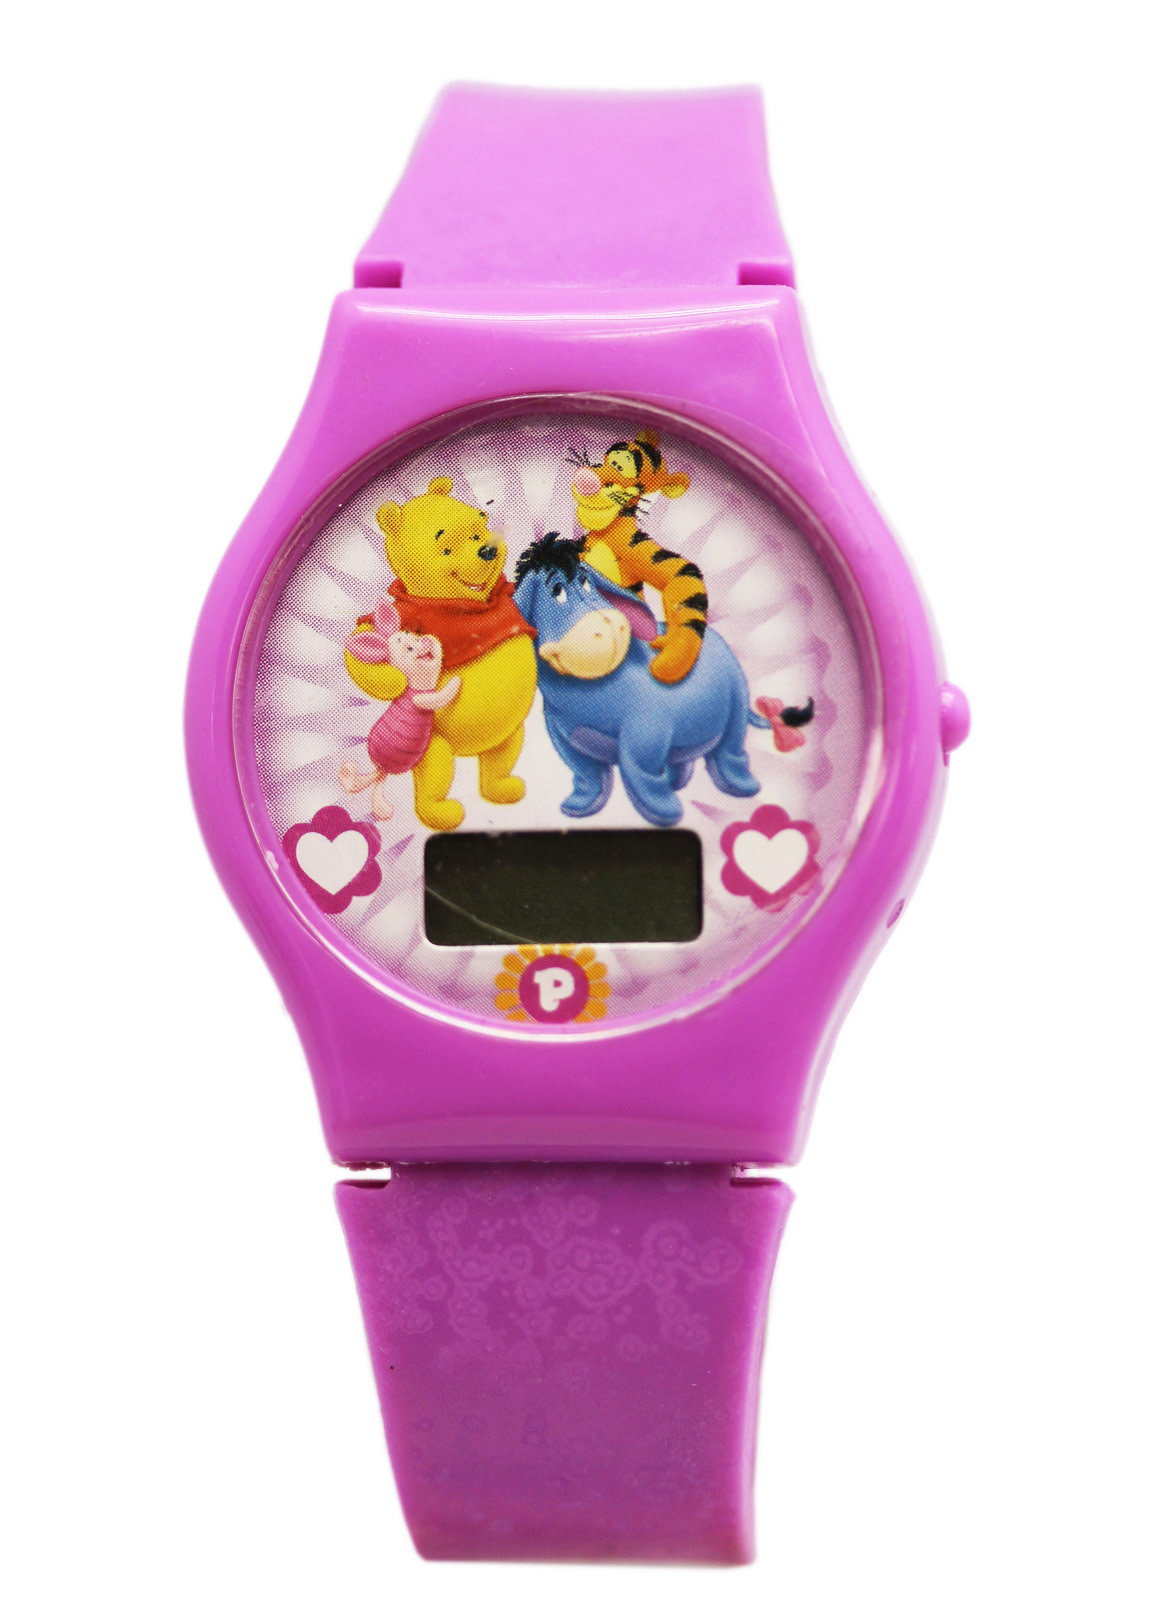 Disney's Winnie the Pooh Purple Colored Digital Screen Character Watch